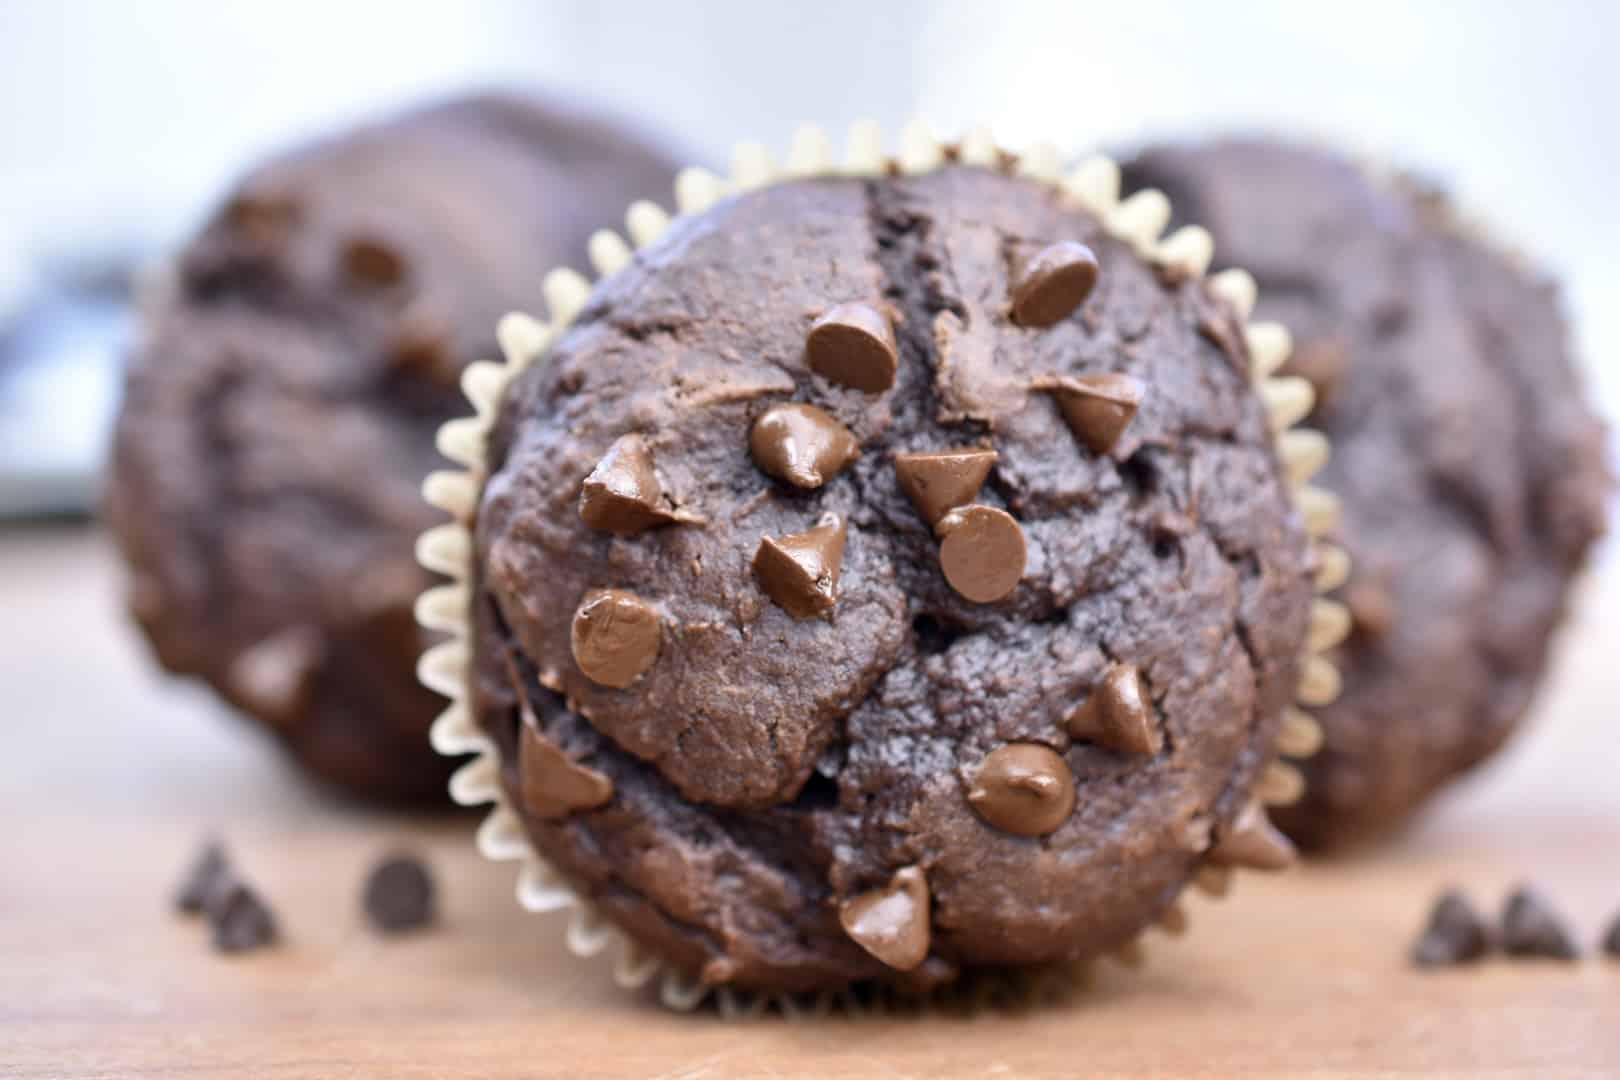 closeup of 100 calorie chocolate muffin with chocolate chips on top